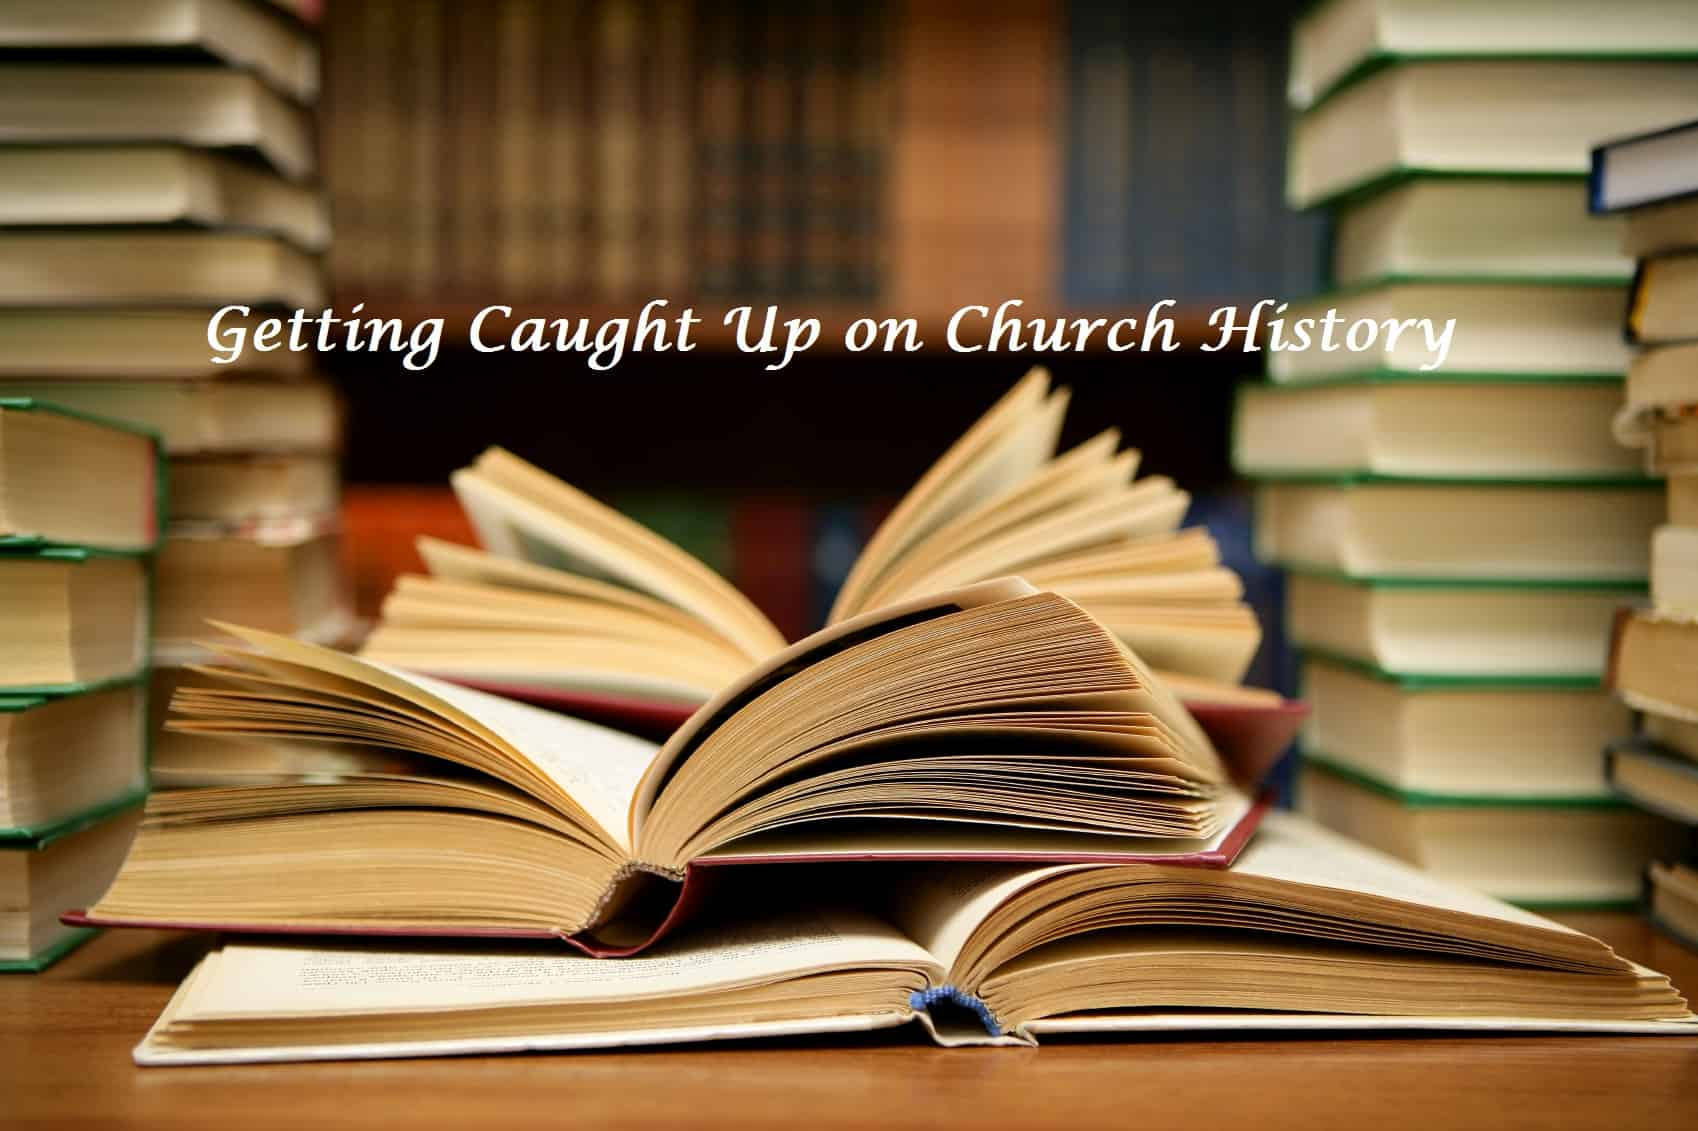 Caught, Get Caught Up on Church History, Servants of Grace